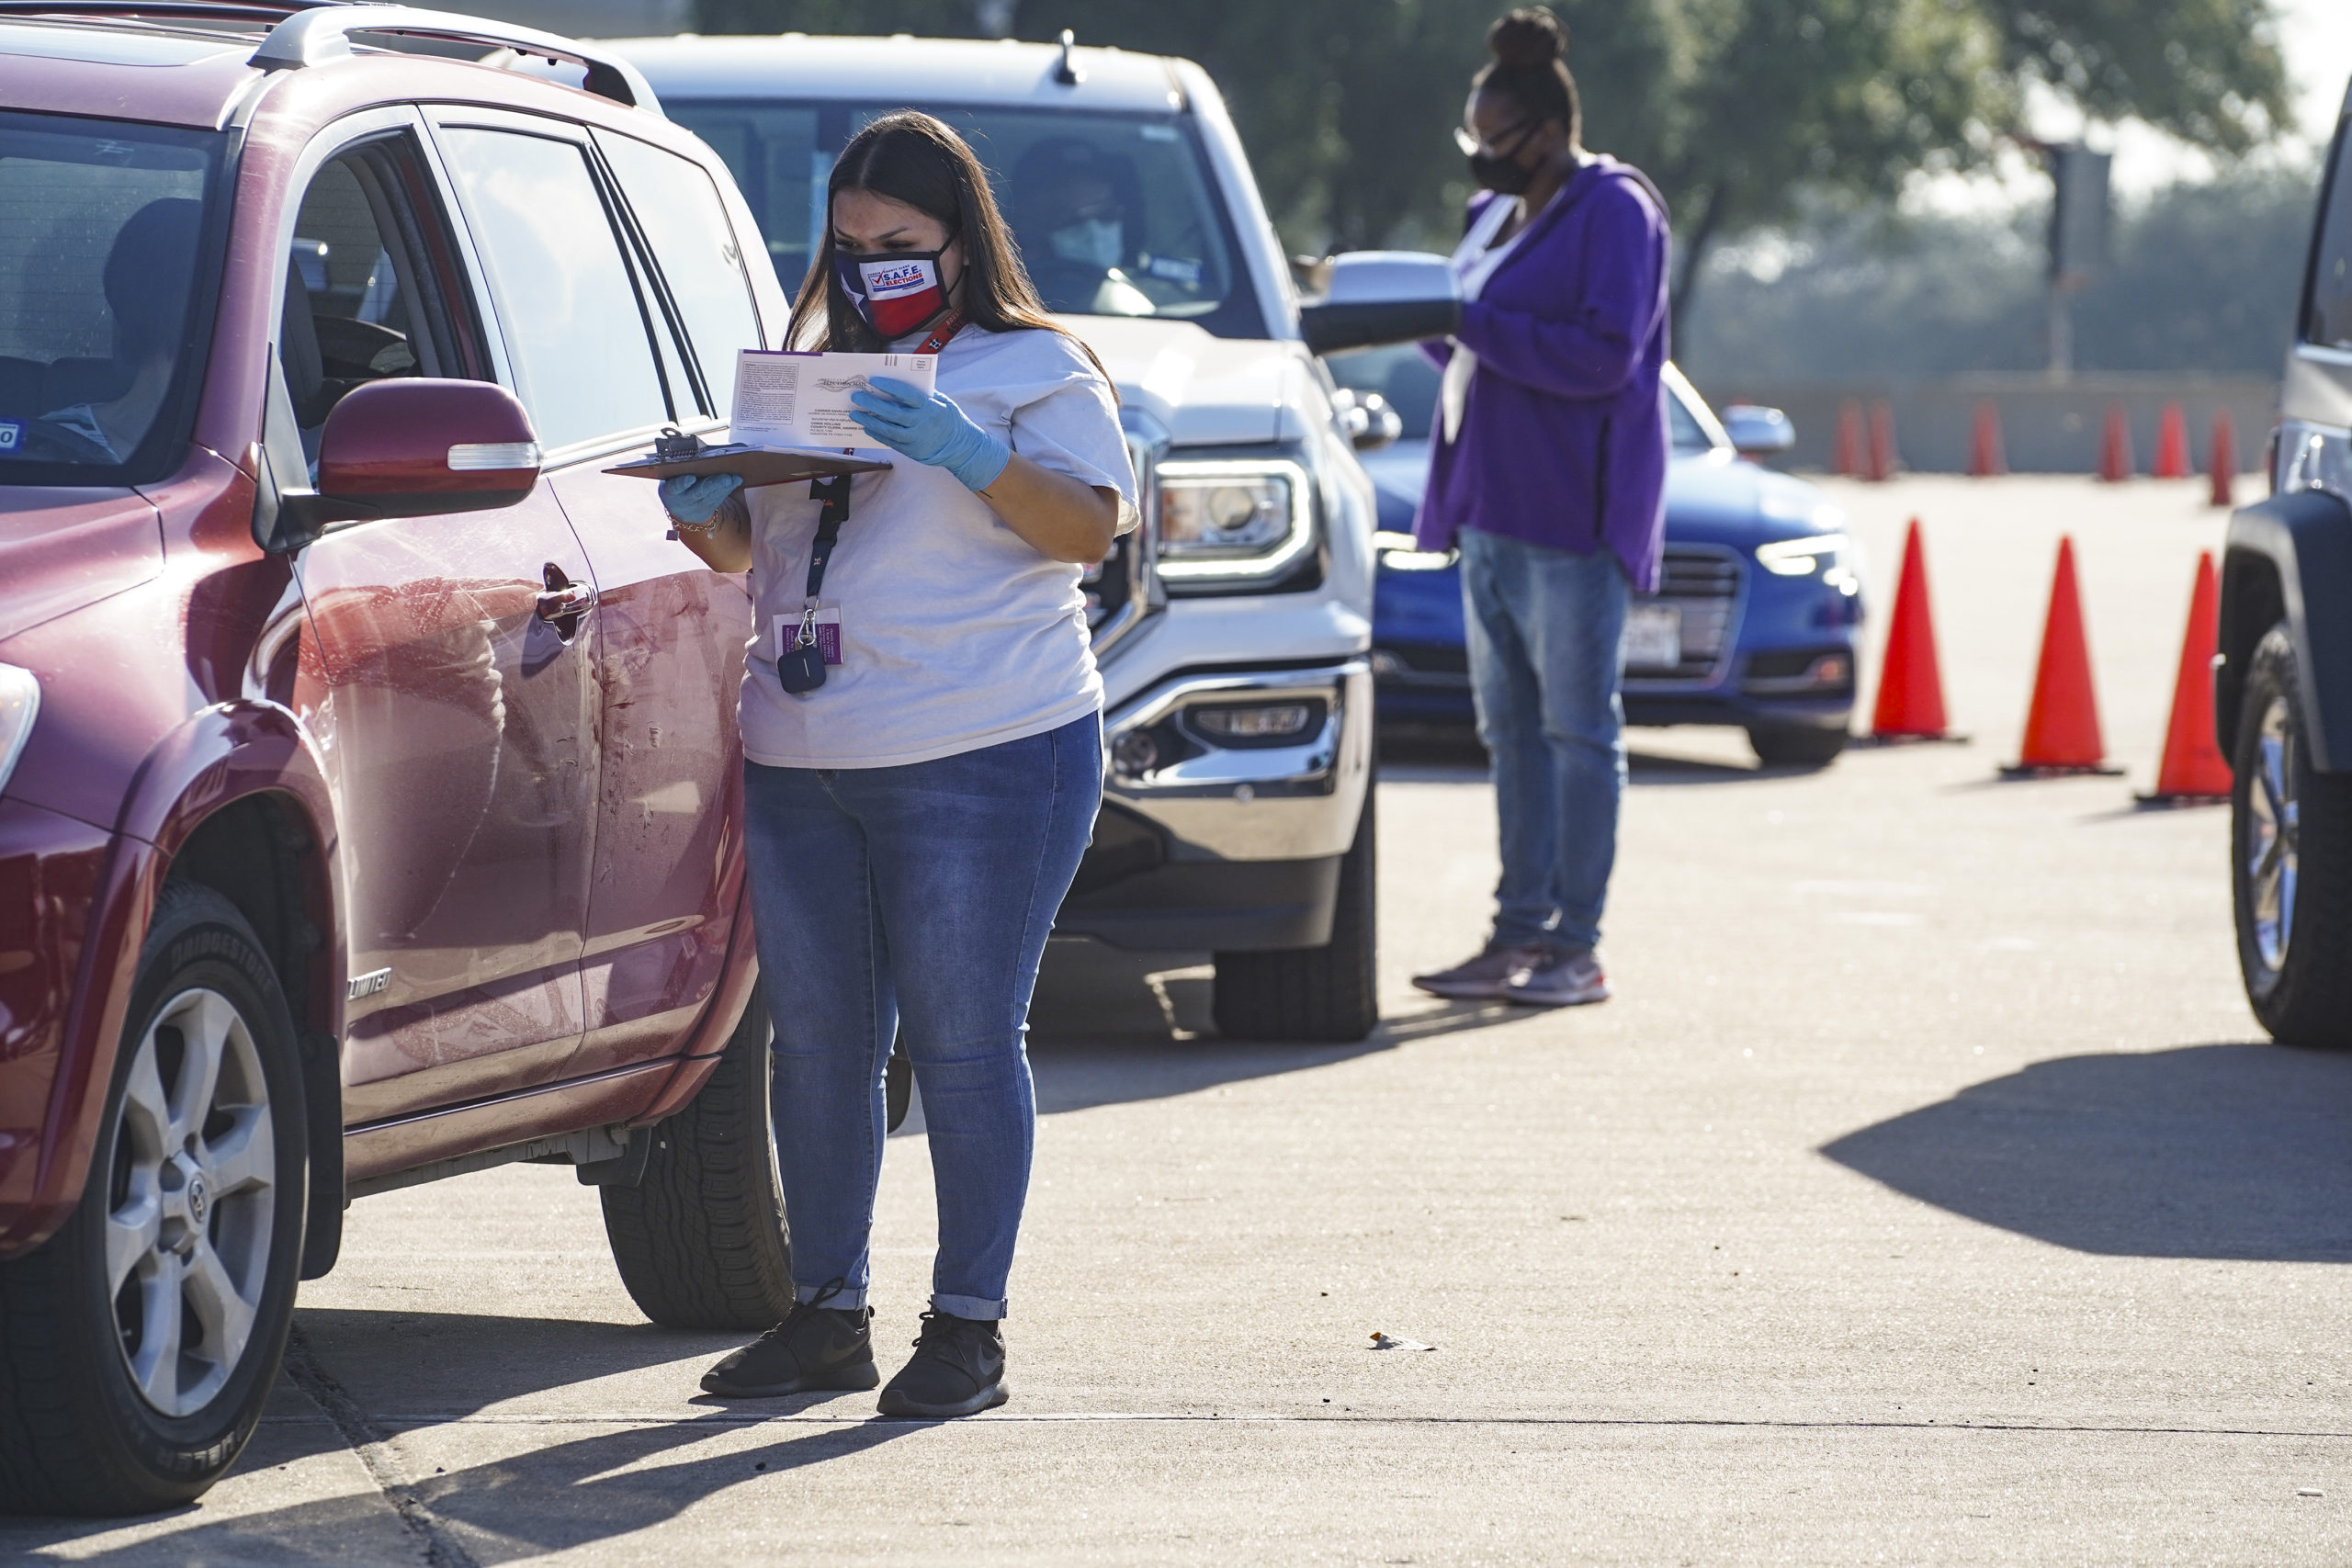 HOUSTON, TX - OCTOBER 07: Election workers accept mail in ballot from voters at drive-through mail ballot drop off site at NRG Stadium on October 7, 2020 in Houston, Texas. Gov. Gregg Abbott issued an executive order limiting each Texan county to one mail ballot drop-off site due to the pandemic. (Photo by Go Nakamura/Getty Images)